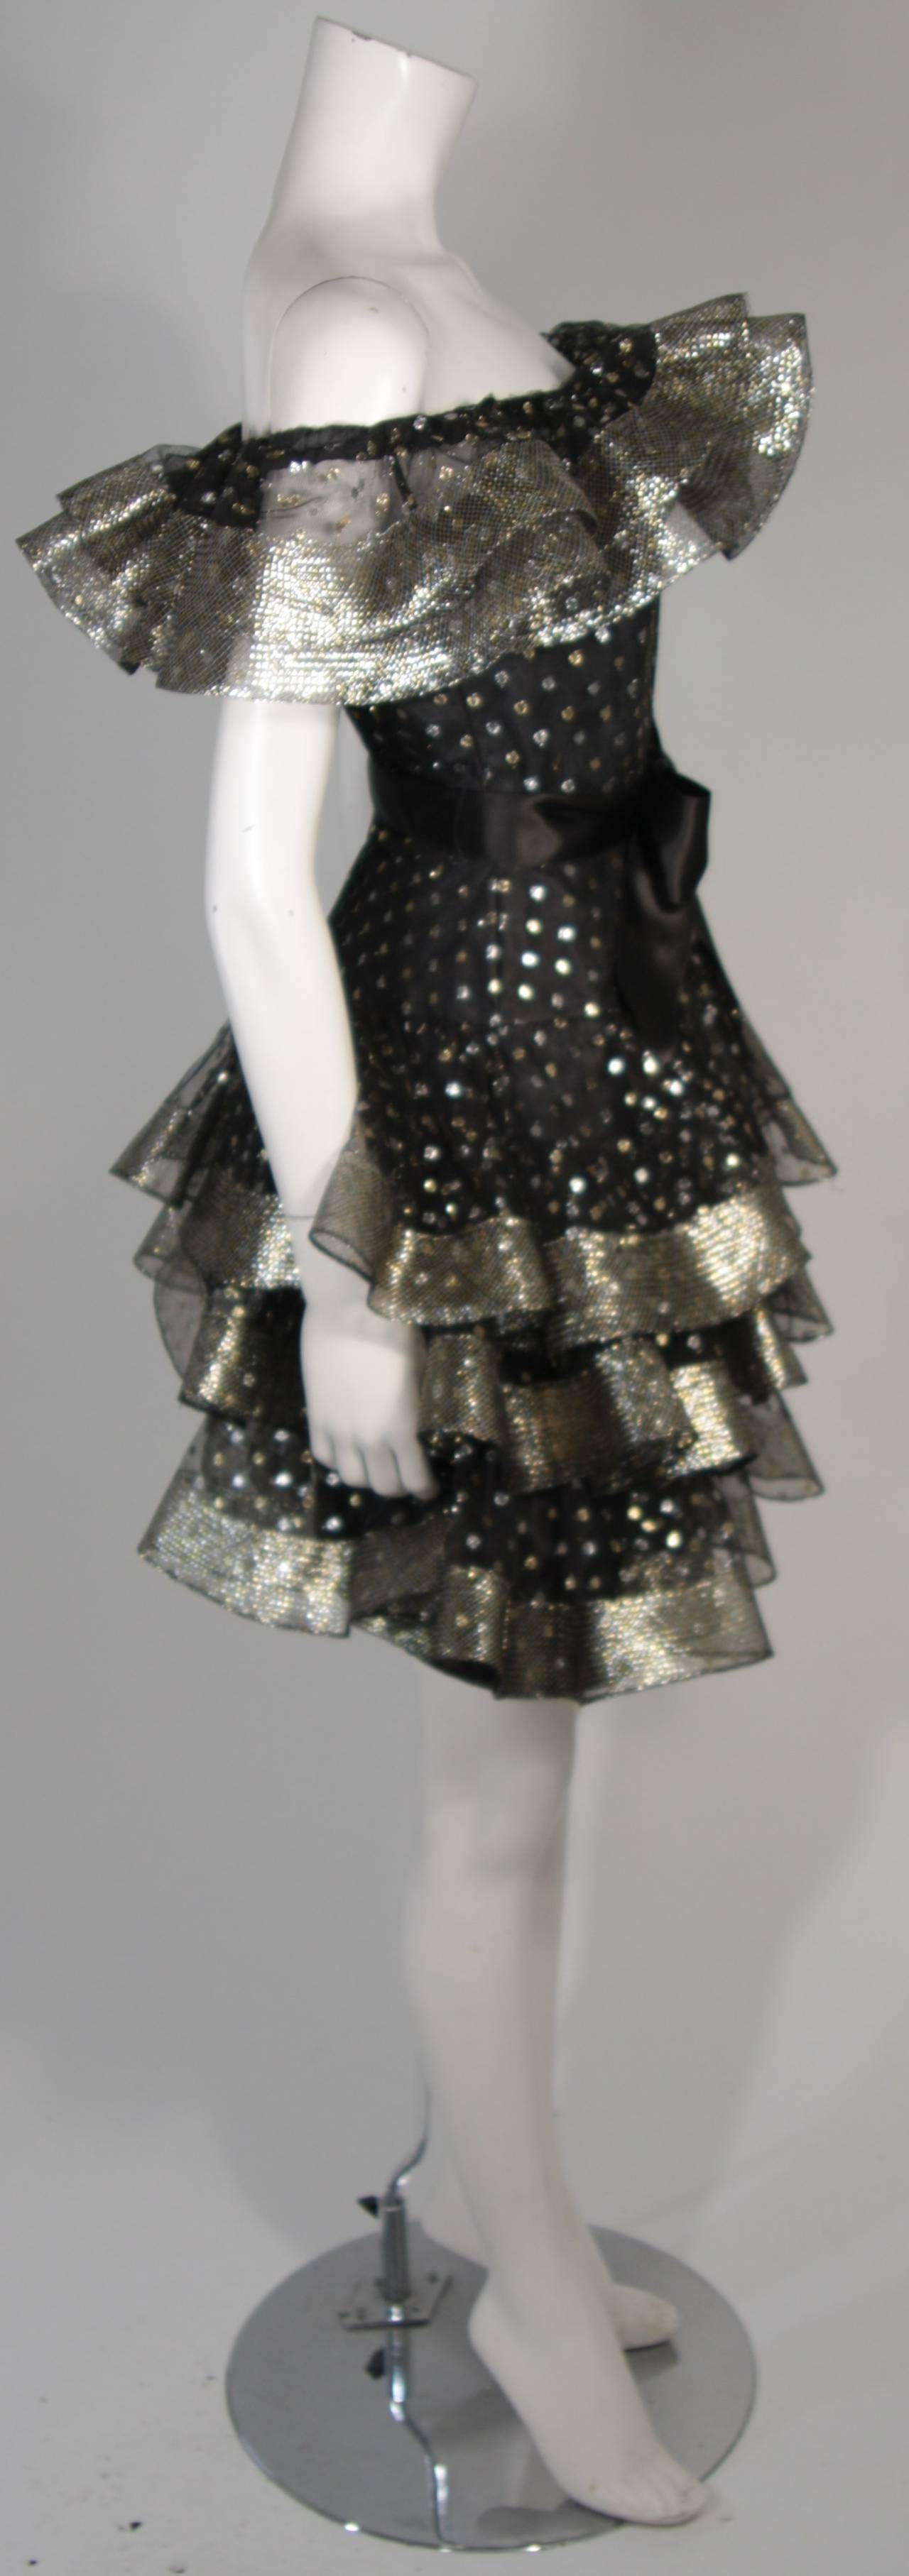 Victor Costa Black Ruffled Cocktail Dress with Silver and Gold Polka Dots Size 2 For Sale 2